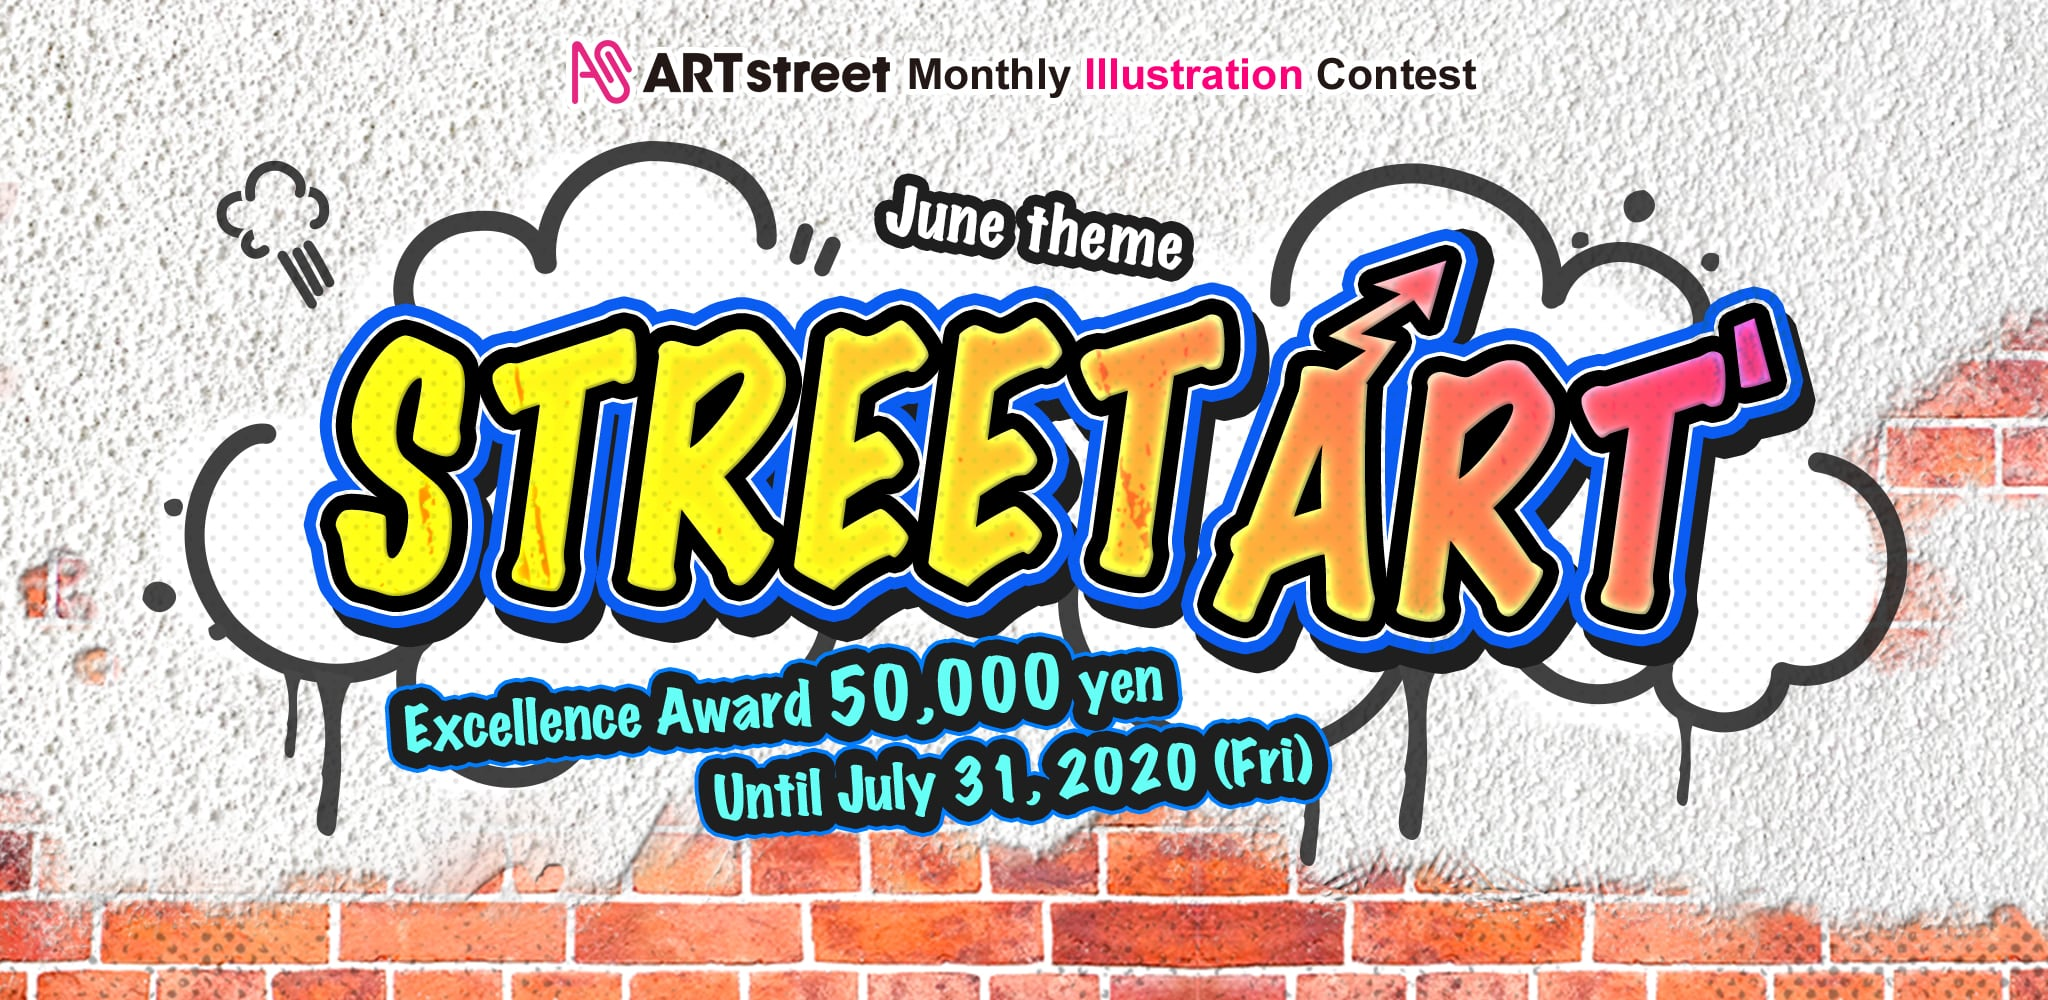 ART street Monthly Illustration Contest June Theme: Street art| Contest - ART street by MediBang